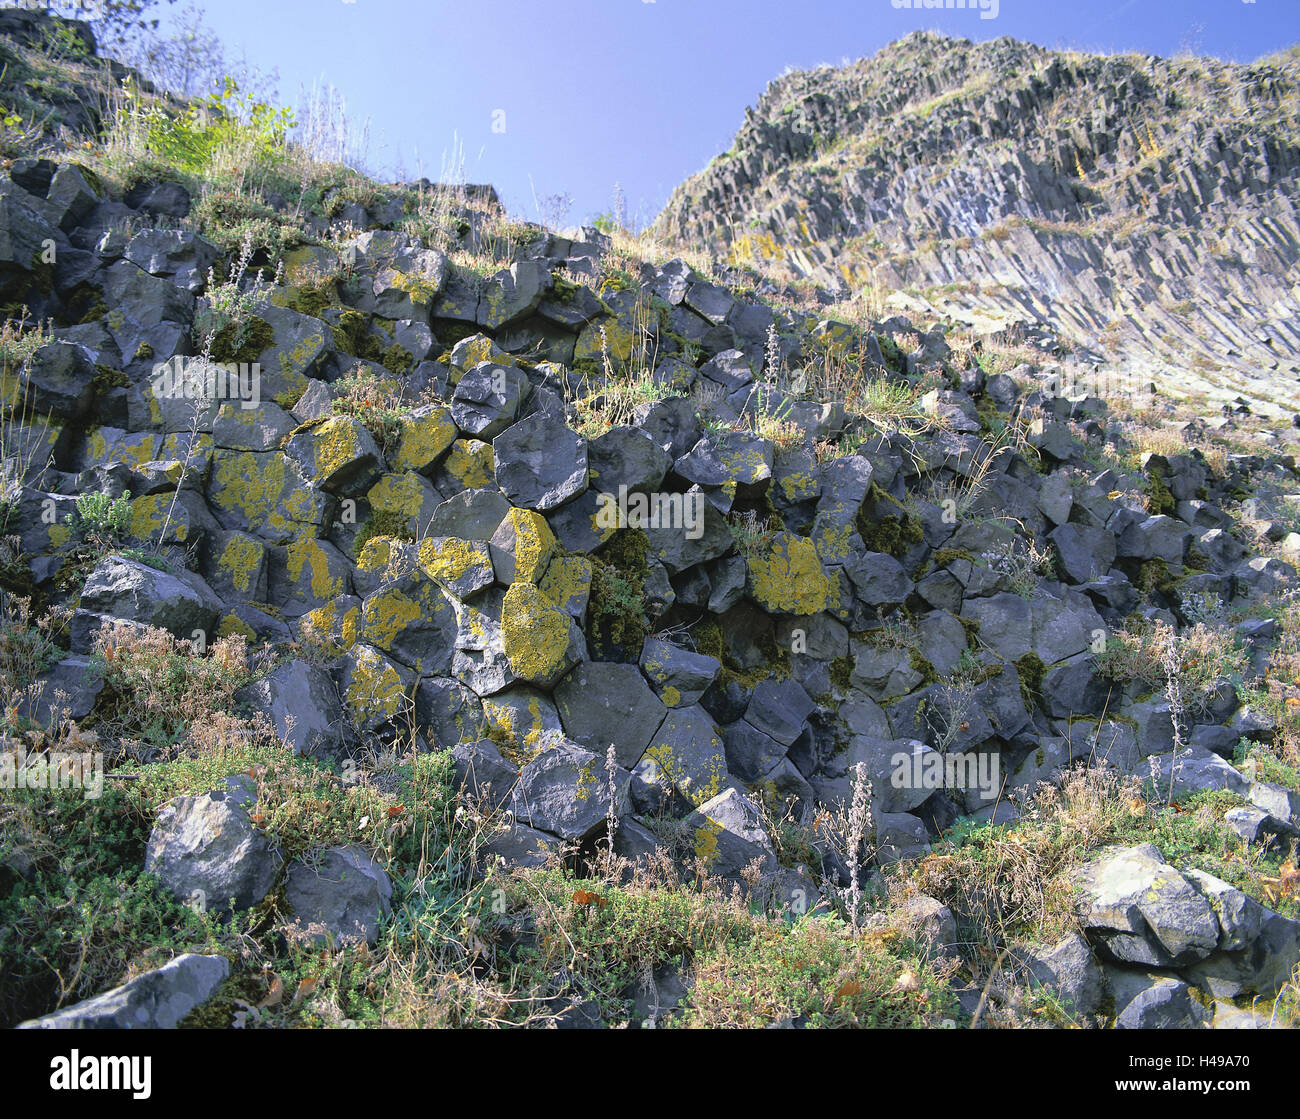 Germany, Bavaria, Upper Palatinate, park stone, 'high park stone', detail, scenery, mountain, rock formation, - Stock Image